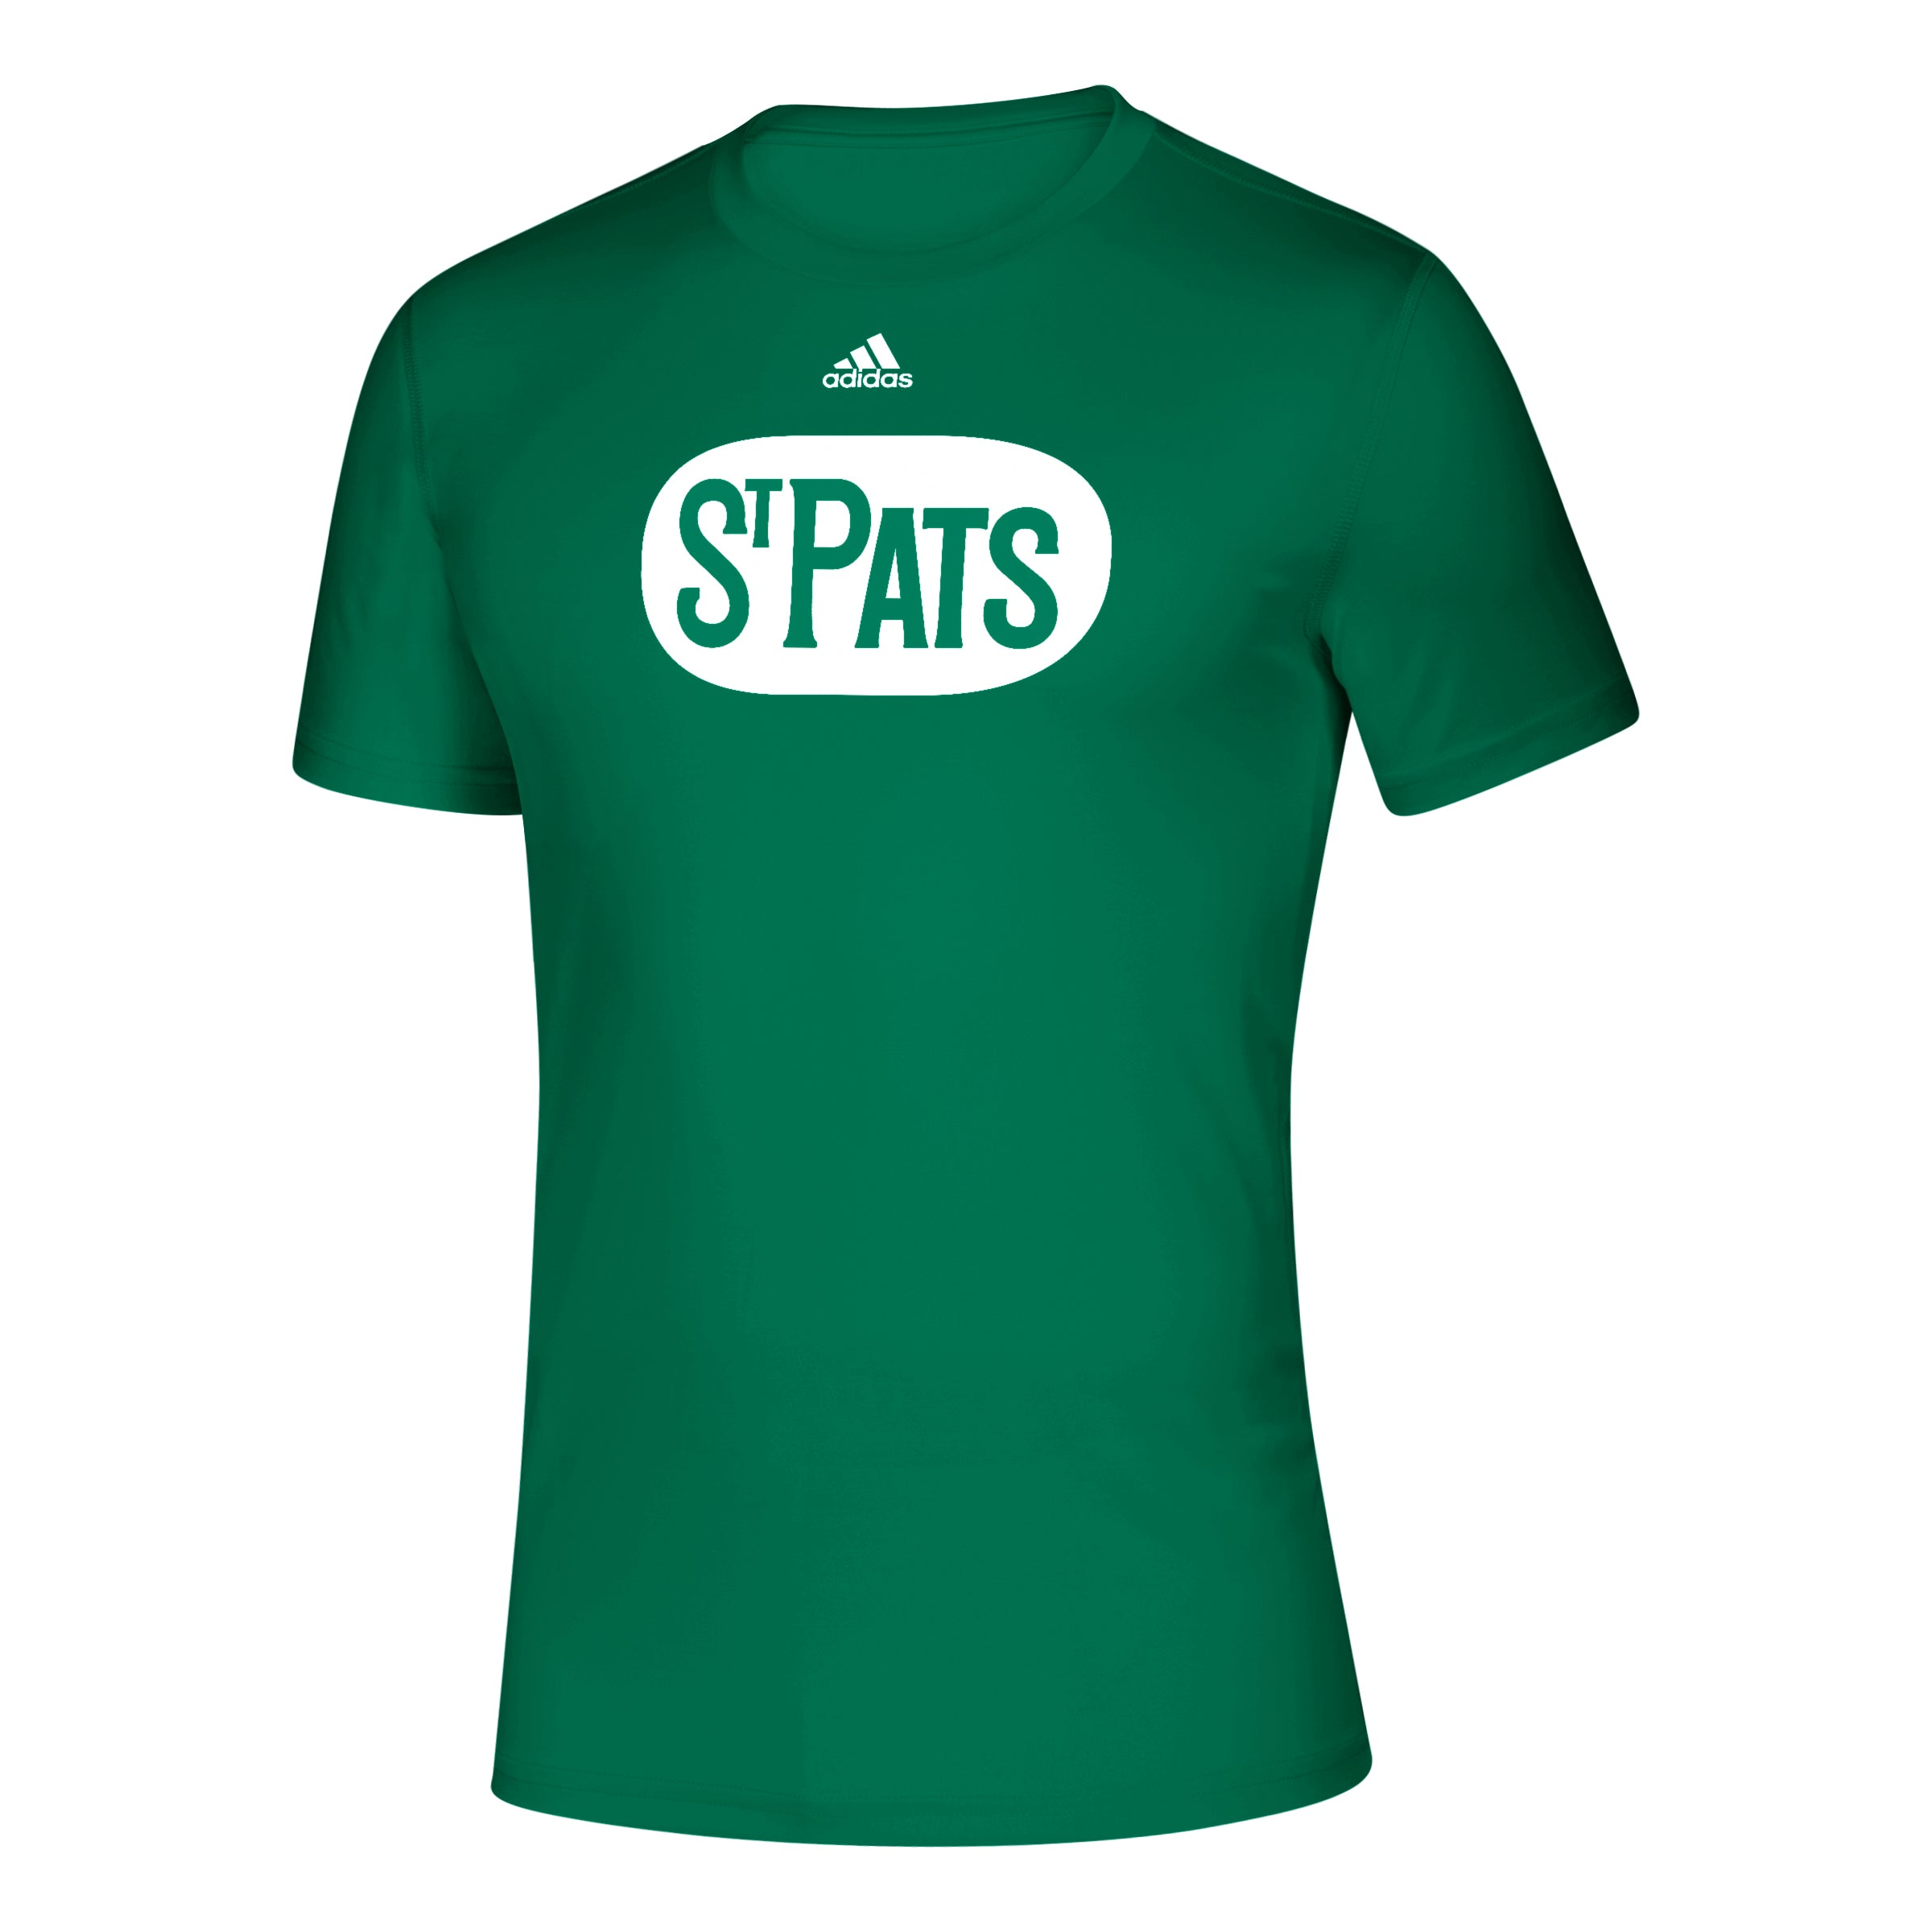 Maple Leafs Adidas St. Pats Men